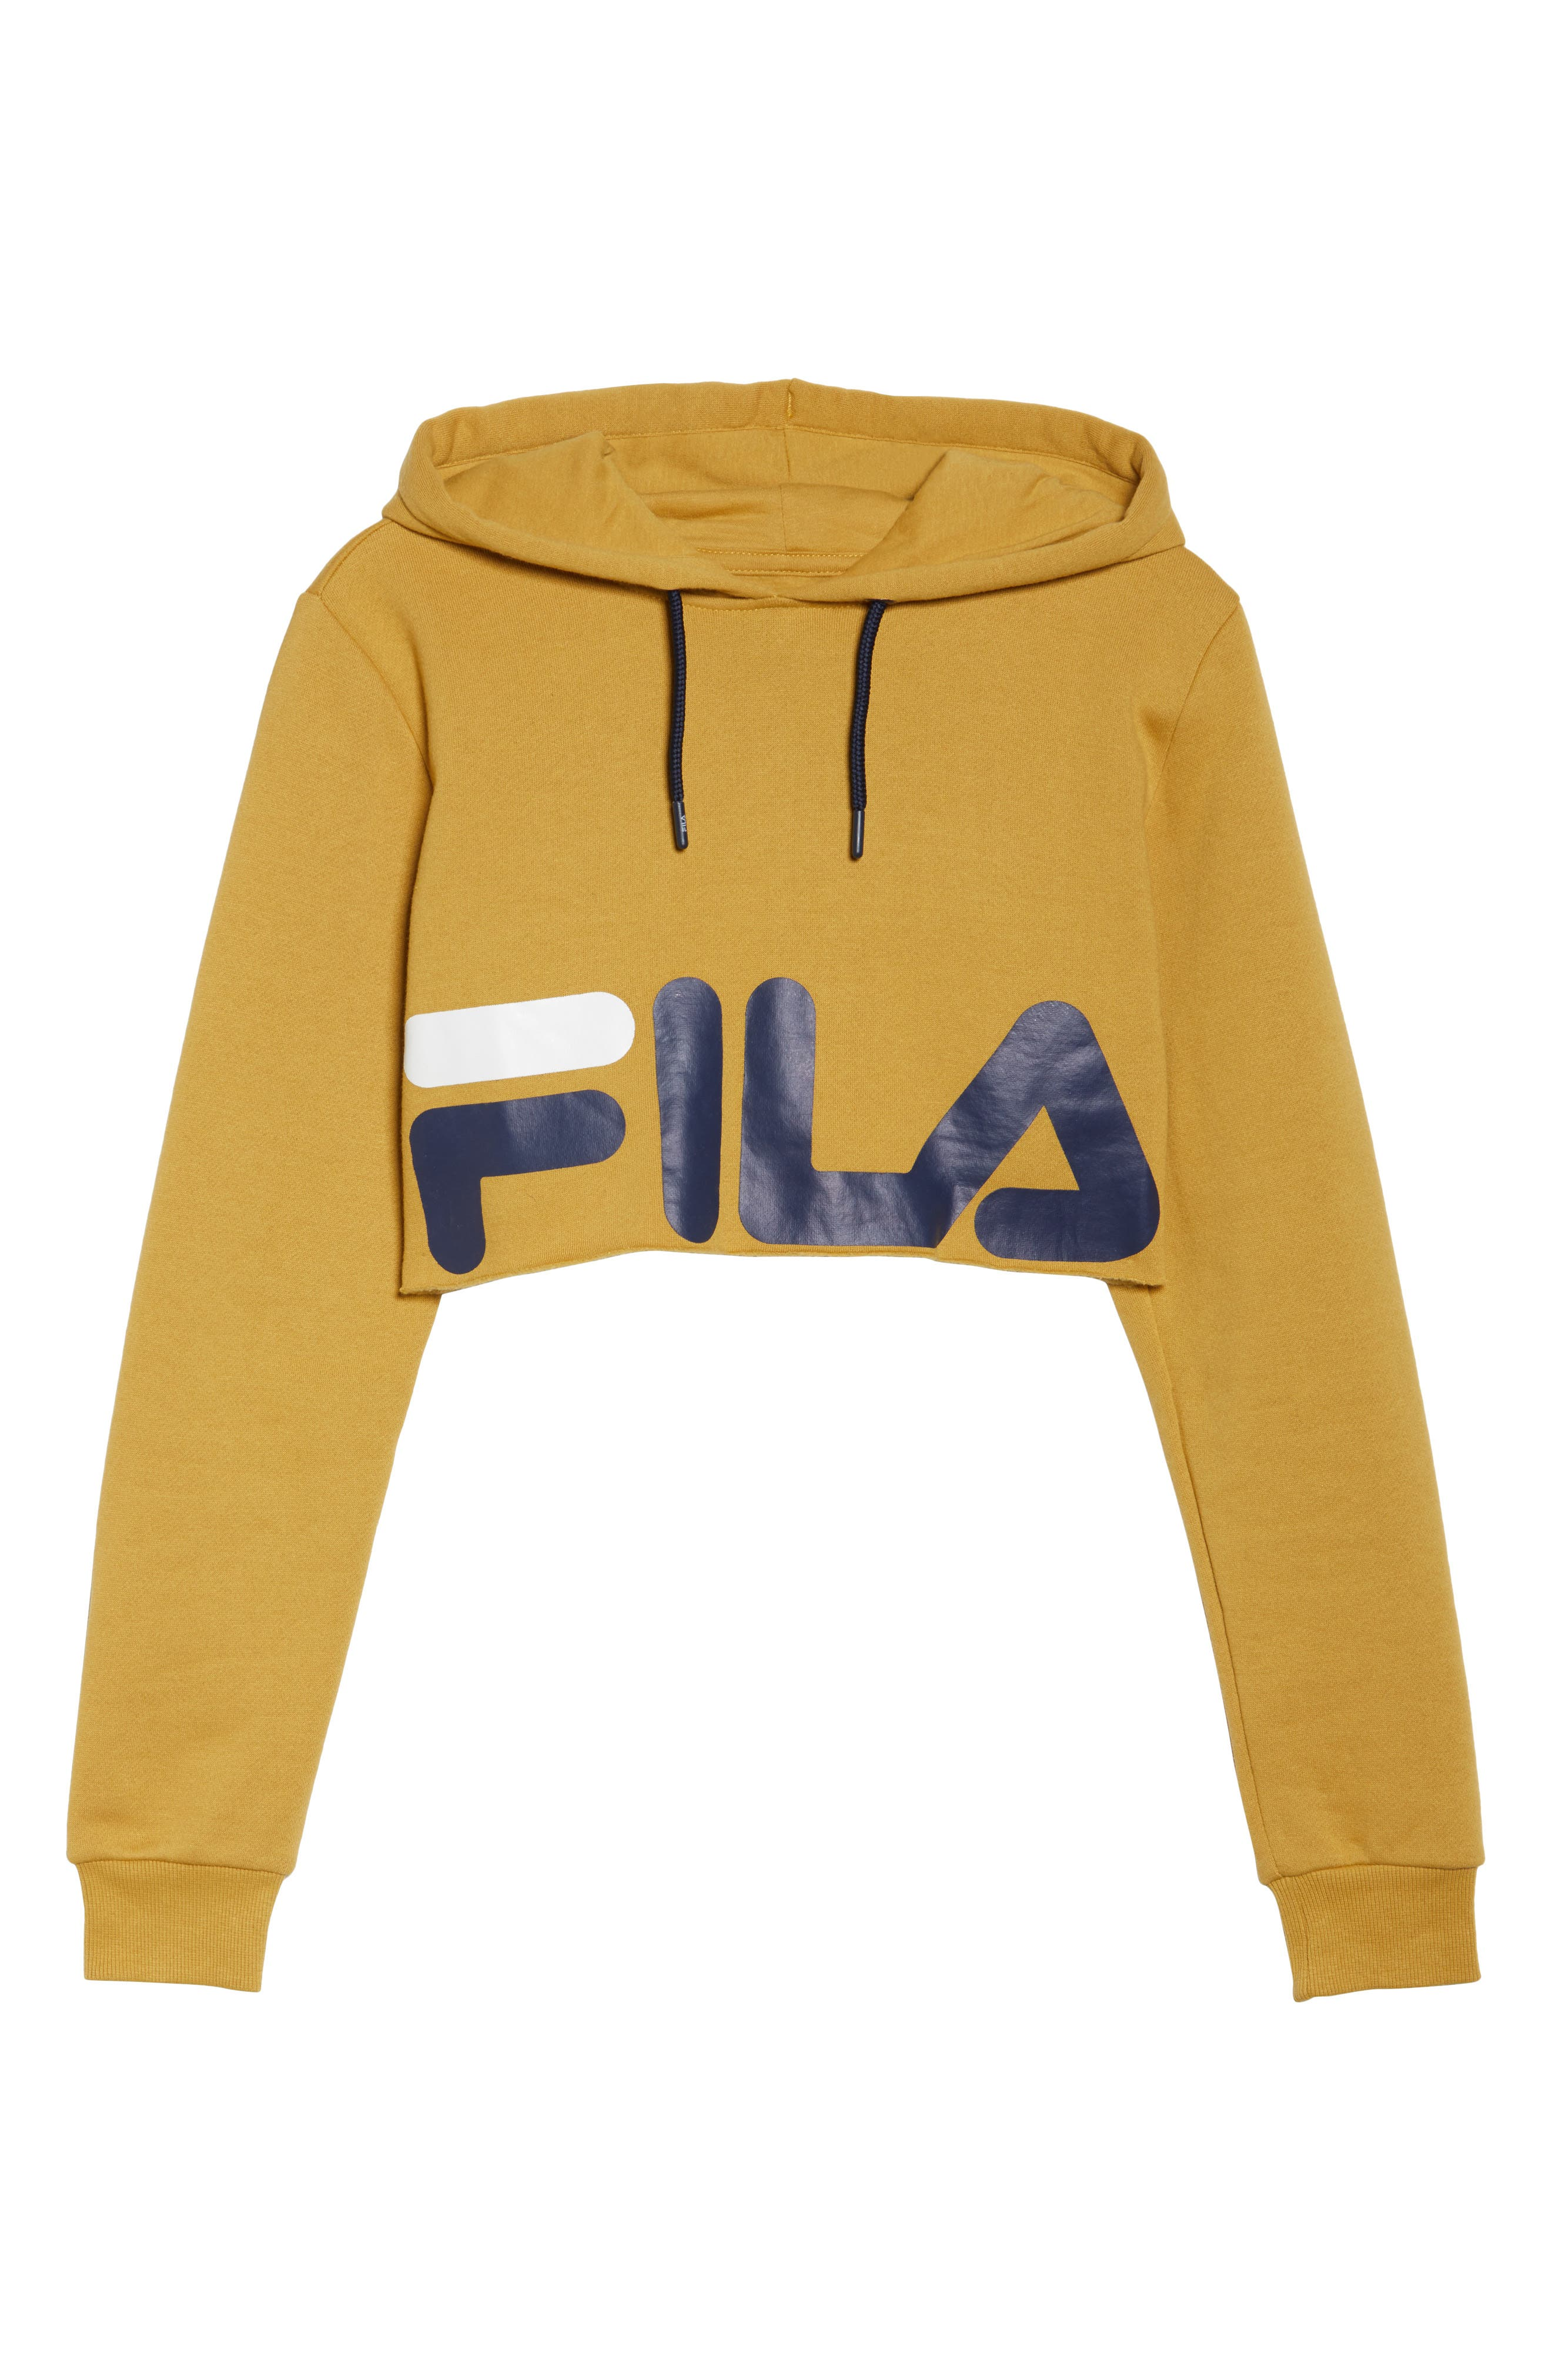 Pam Crop Hoodie,                             Alternate thumbnail 7, color,                             Mustard Gold/ Navy/ White